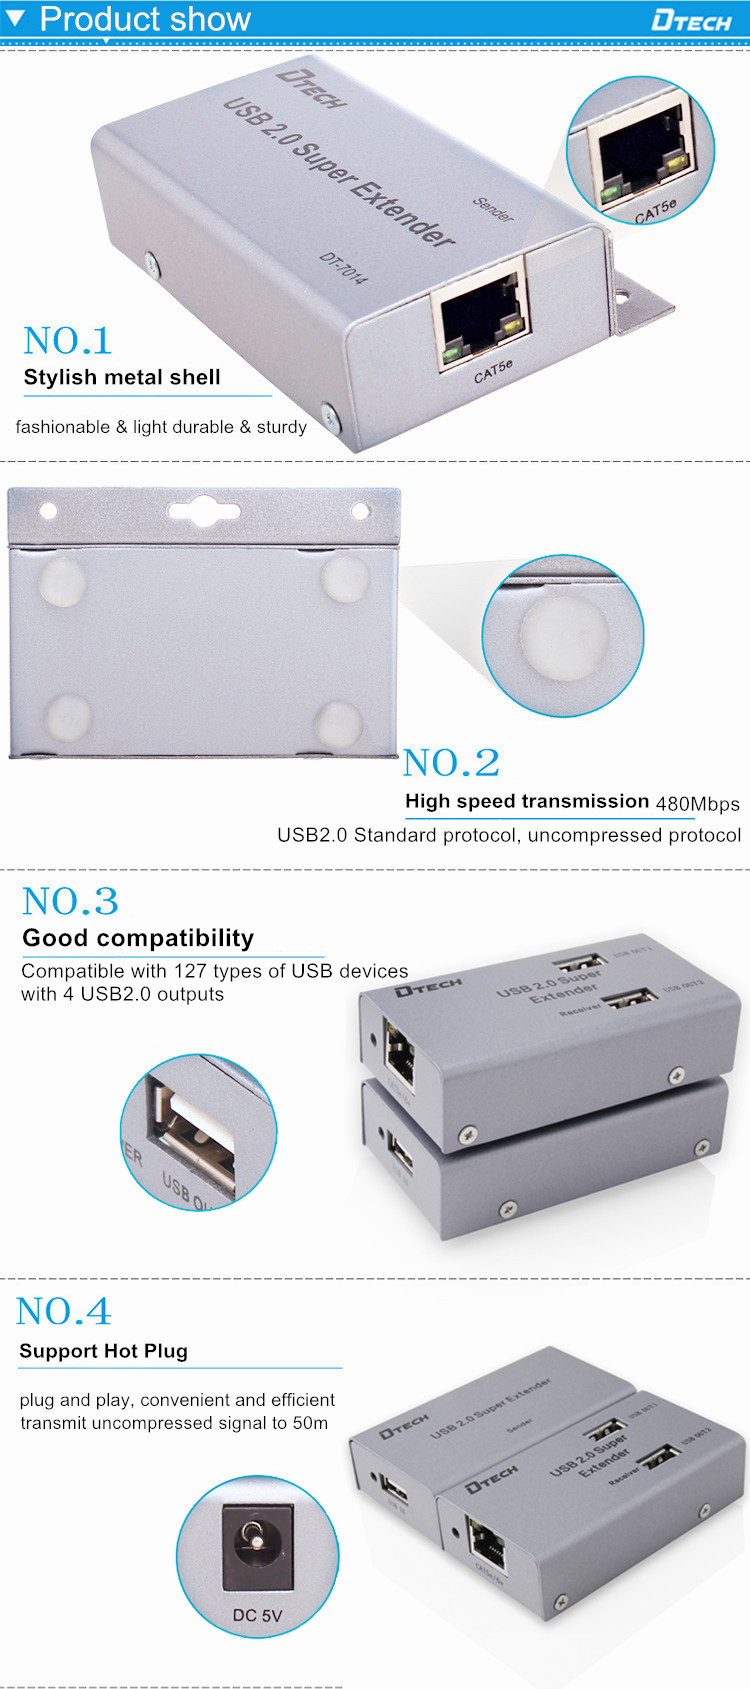 dtech 127kinds devices usb2.0 4 ports 50m extender